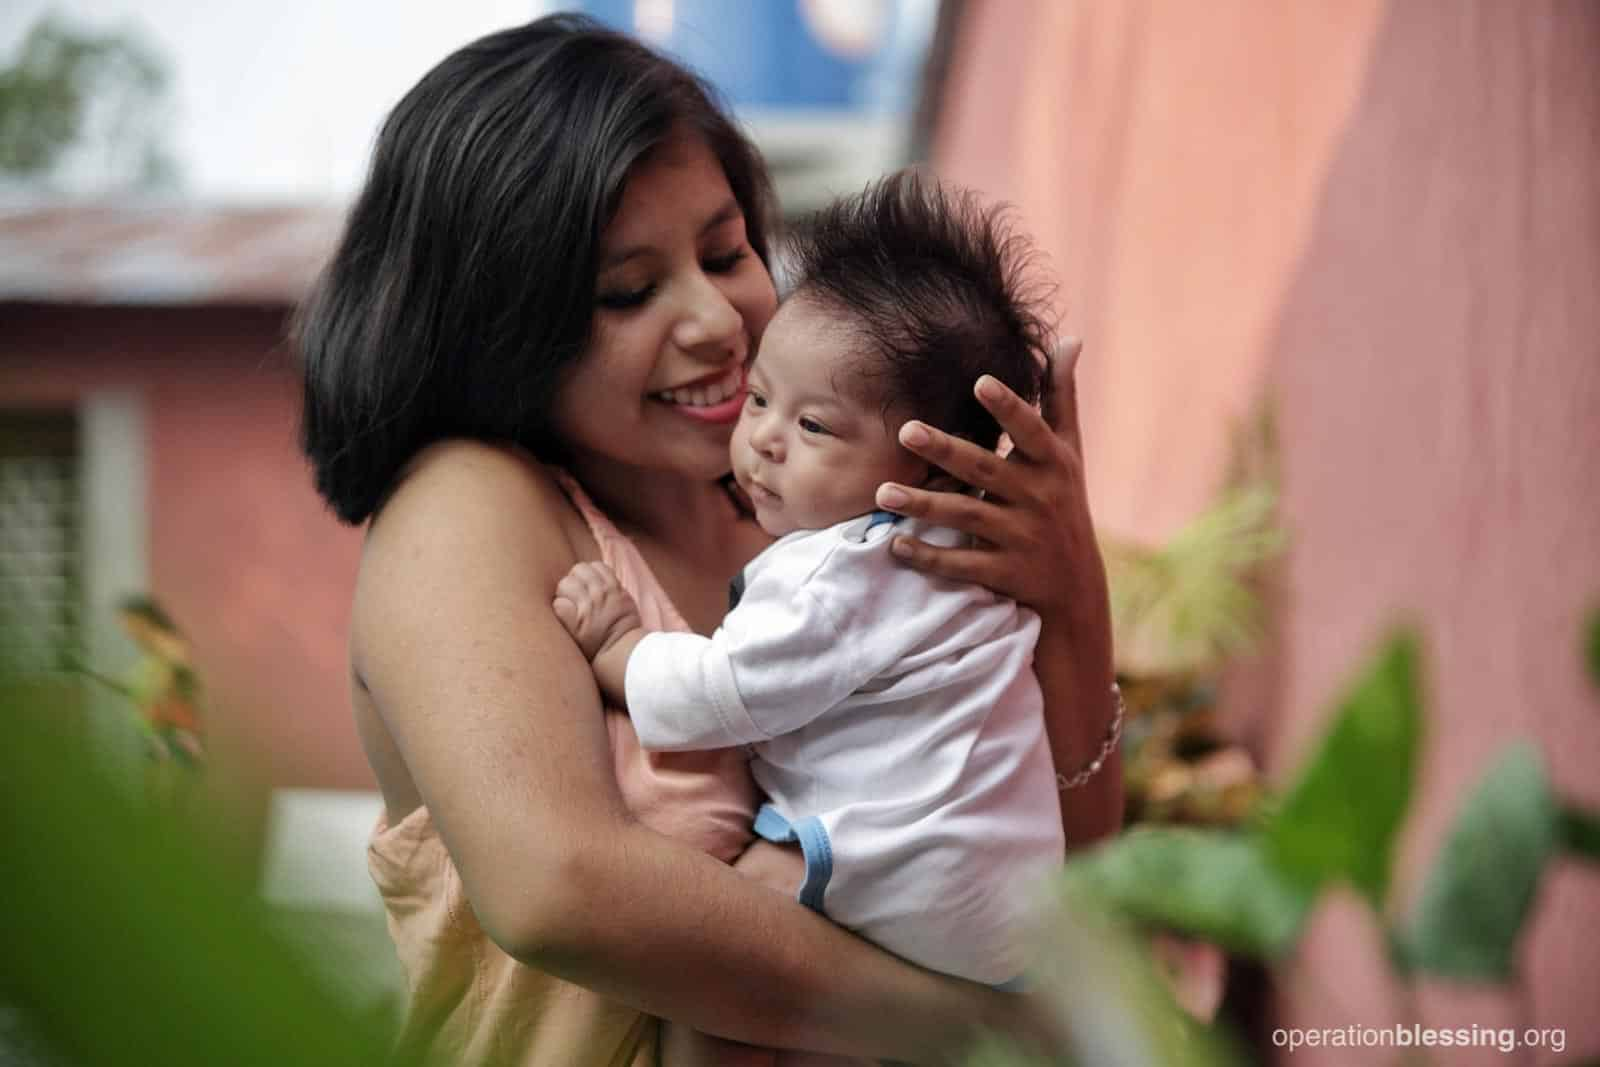 Iroska holds baby Thiago, the newest member of her family.